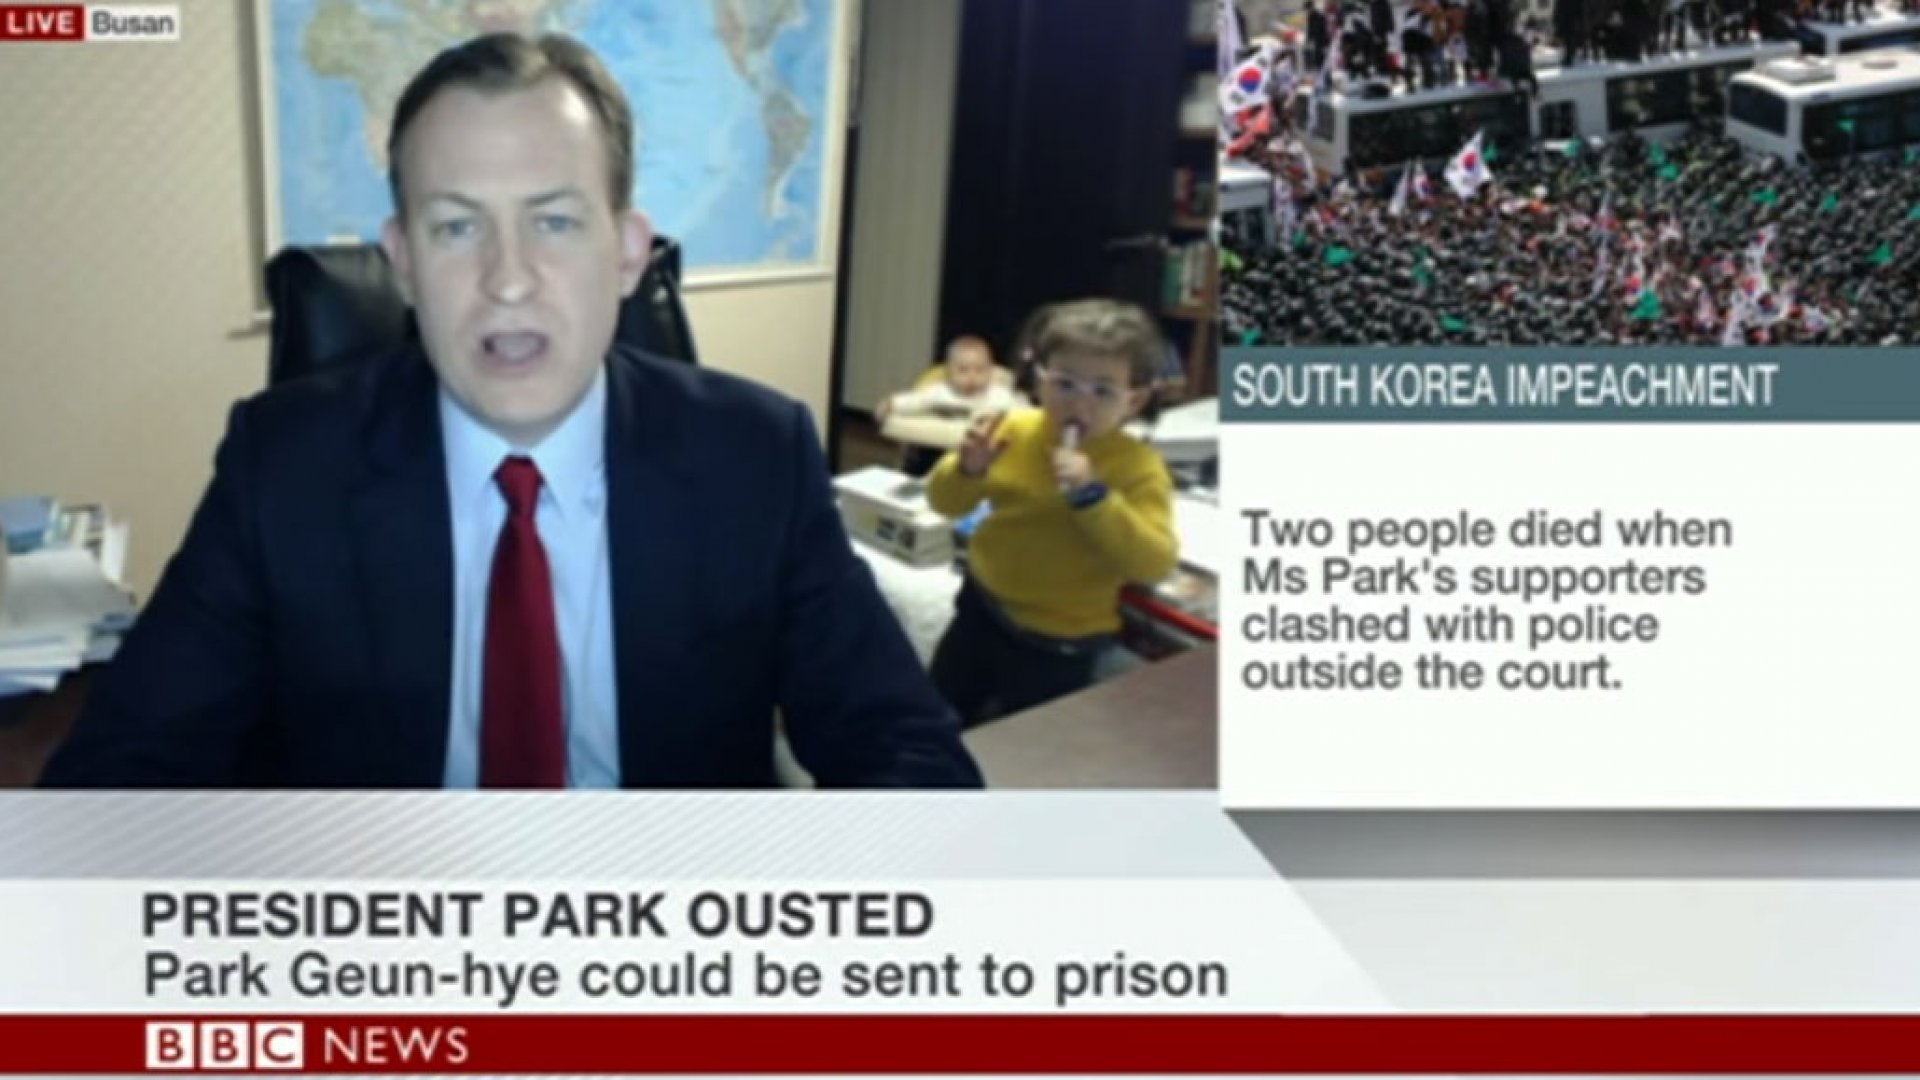 A guest's children momentarily interrupted a live BBC interview.